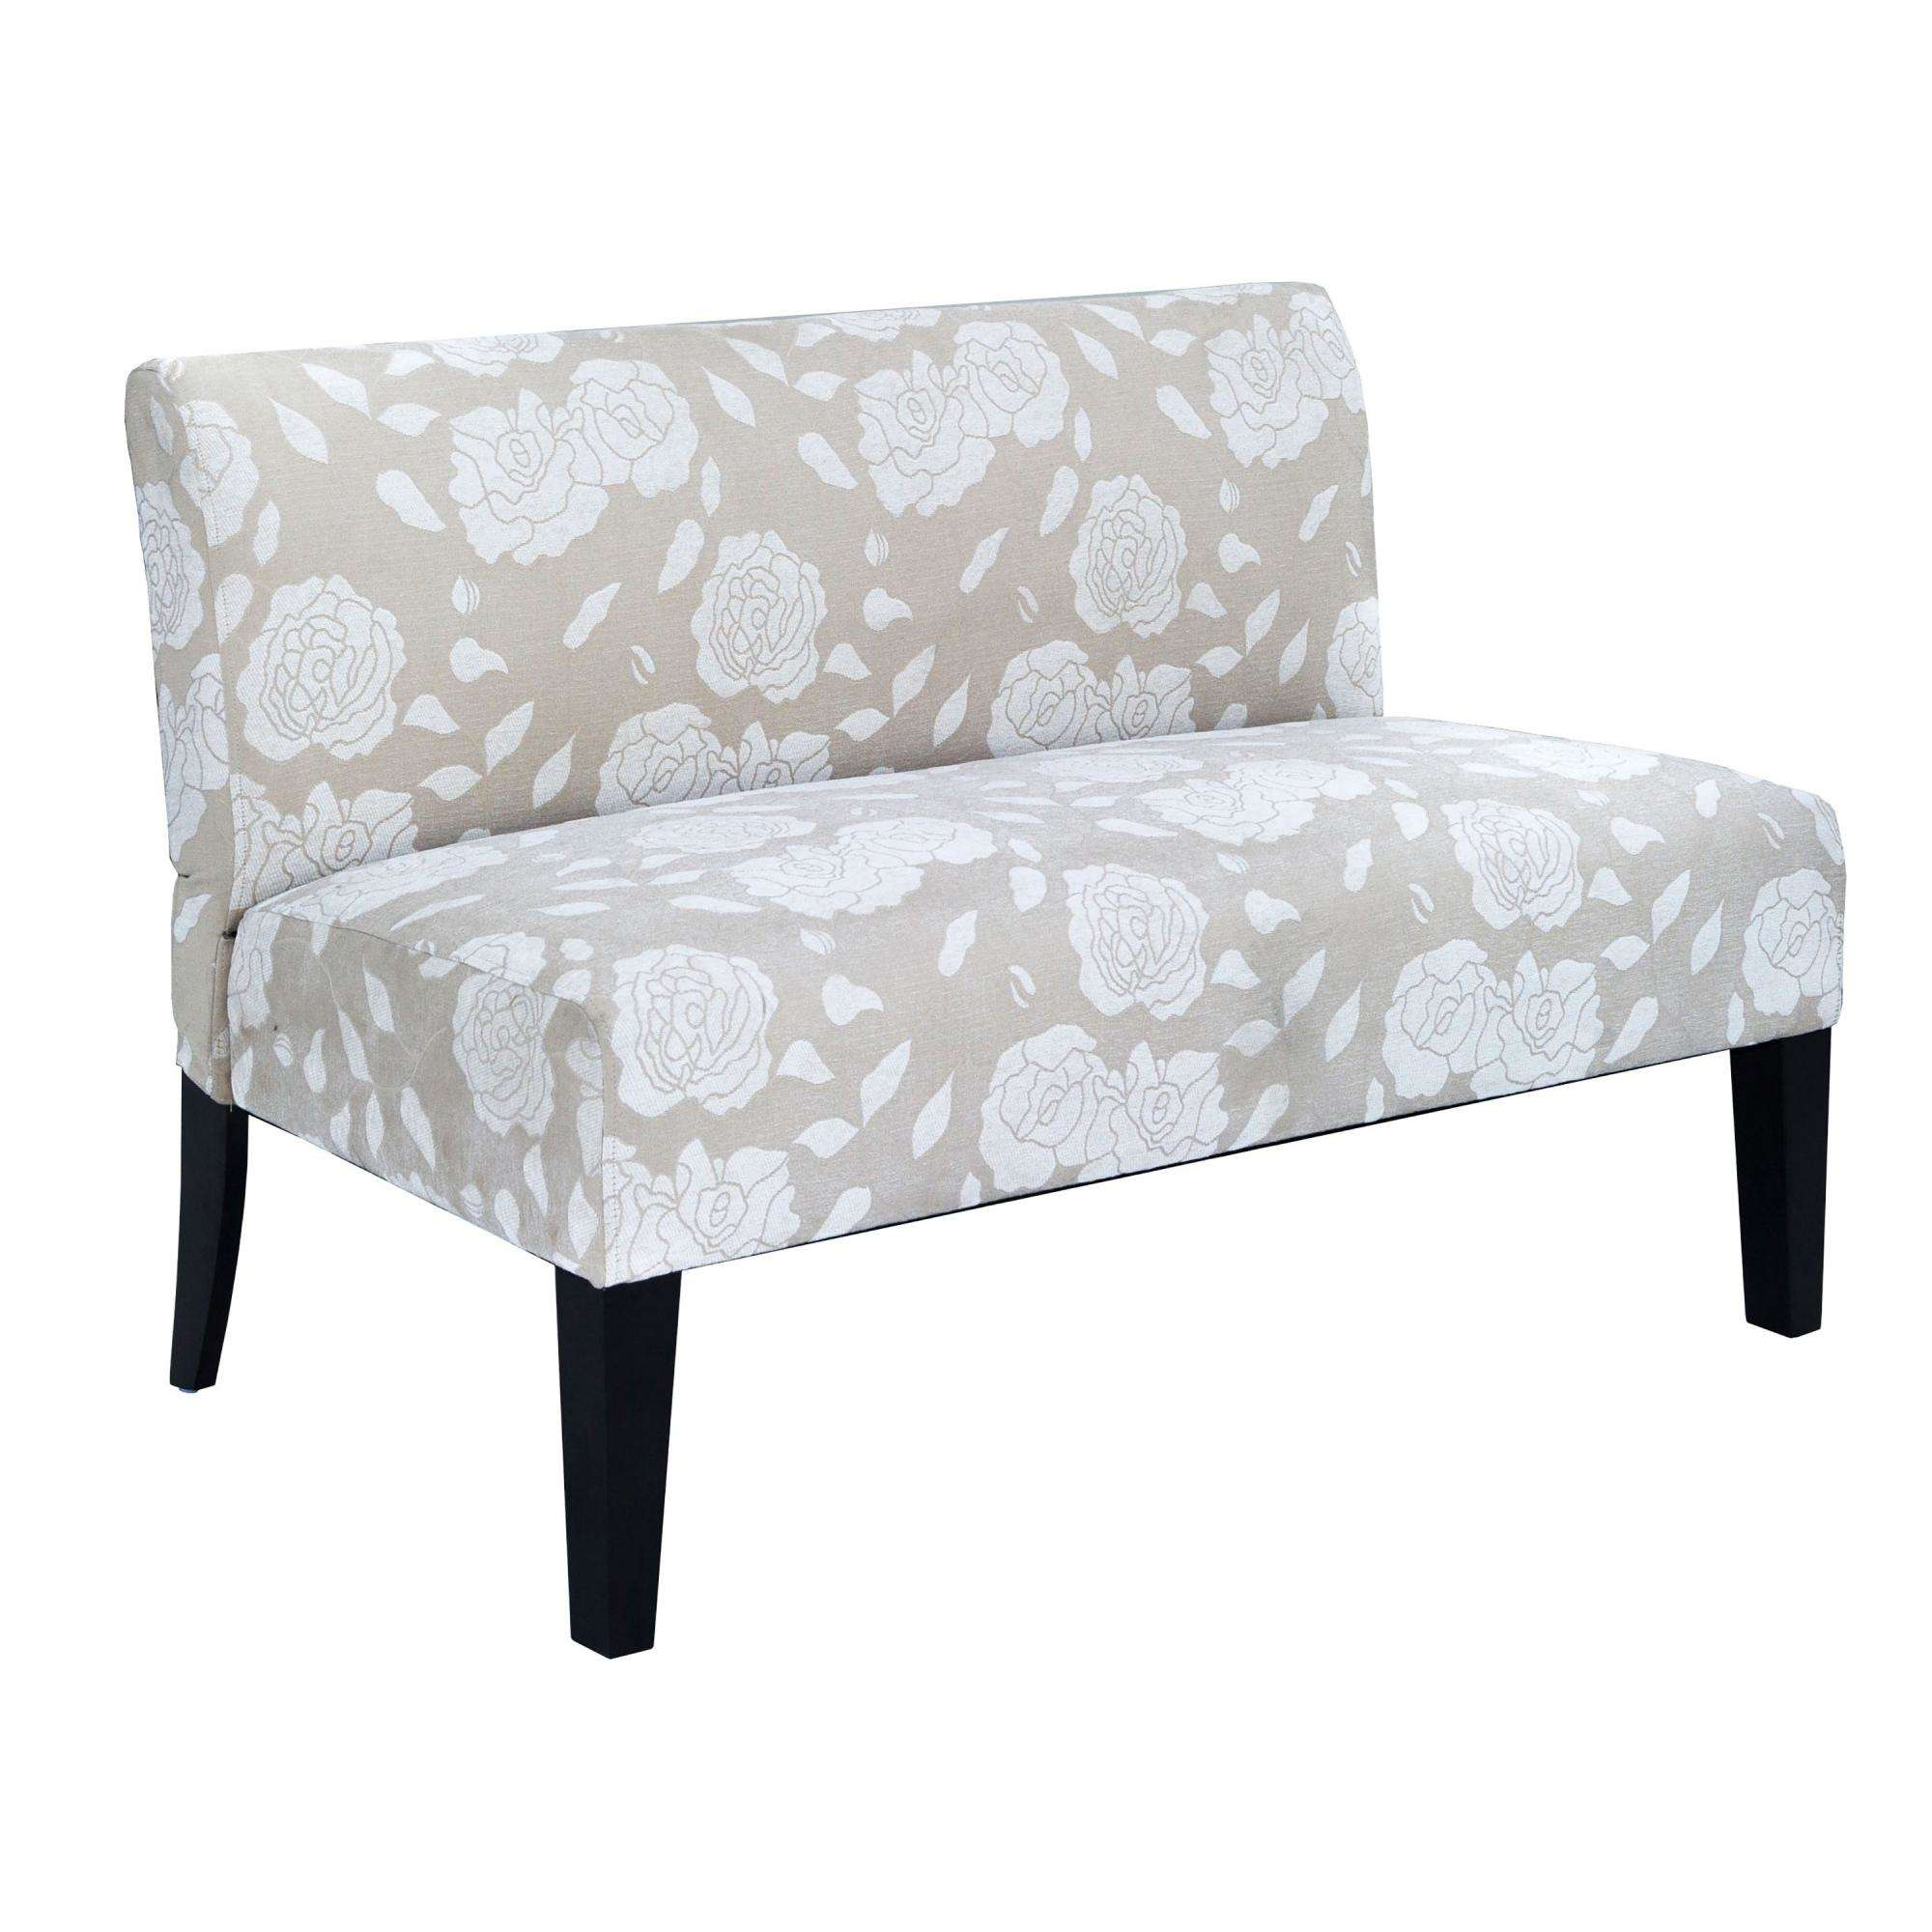 """DHI 47"""" Rose Deco Upholstered Loveseat, Multiple Colors by Dwell Home Inc."""